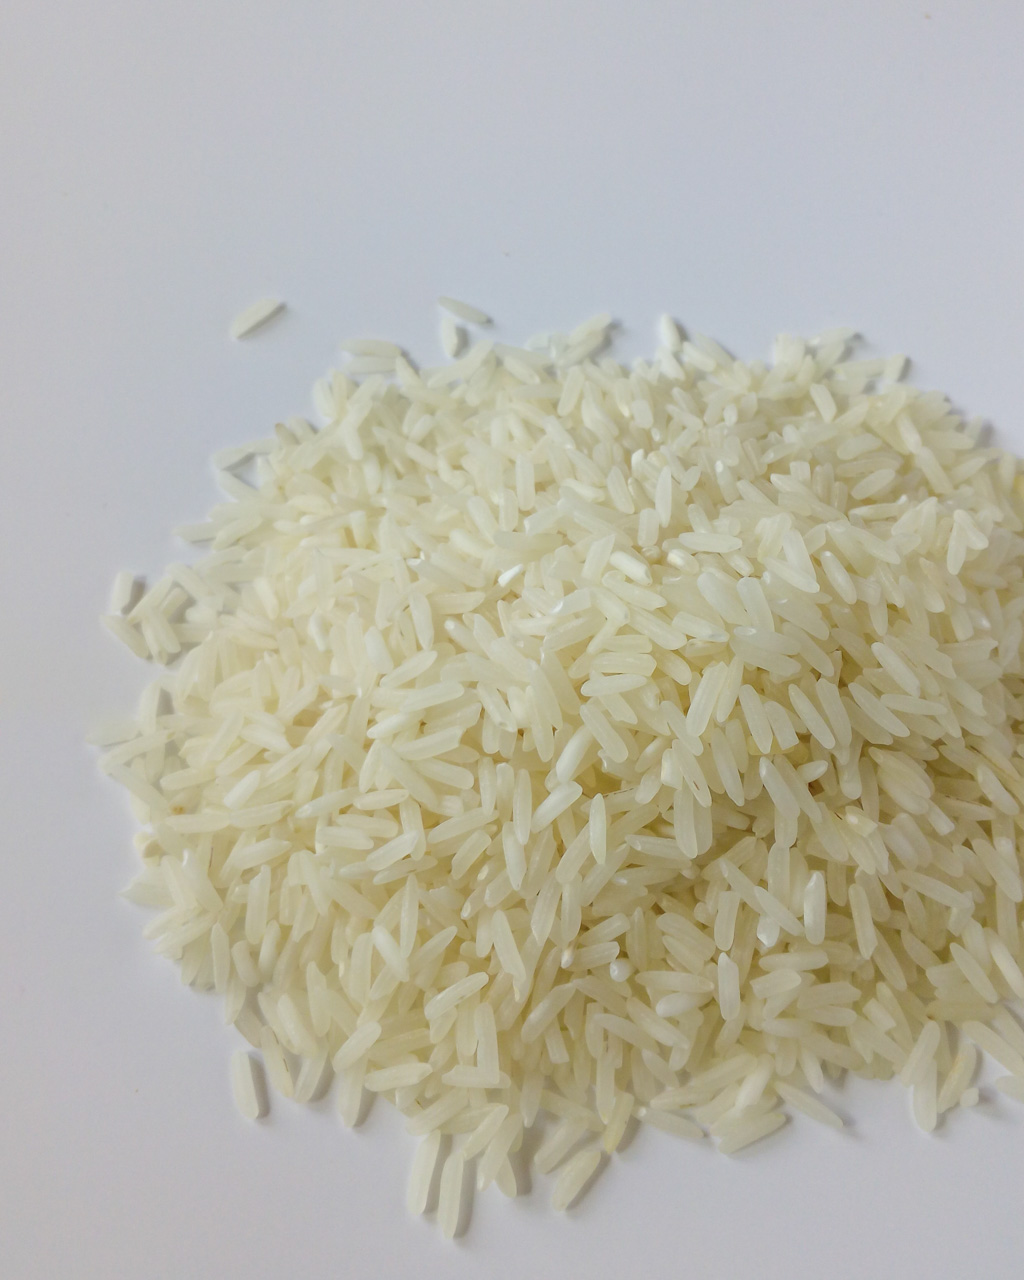 How To Cook Rice Perfectly Every Time – Cooking rice shouldn't be scary. Here is a simple tutorial on how to cook different types of rice perfectly every single time. The rice is going to be beautiful and fluffy, and you won't have burned bottom of the pan.   #howtocookrice #cookingrice #perfectlycookedrice #fluffyrice   simplyanchy.com